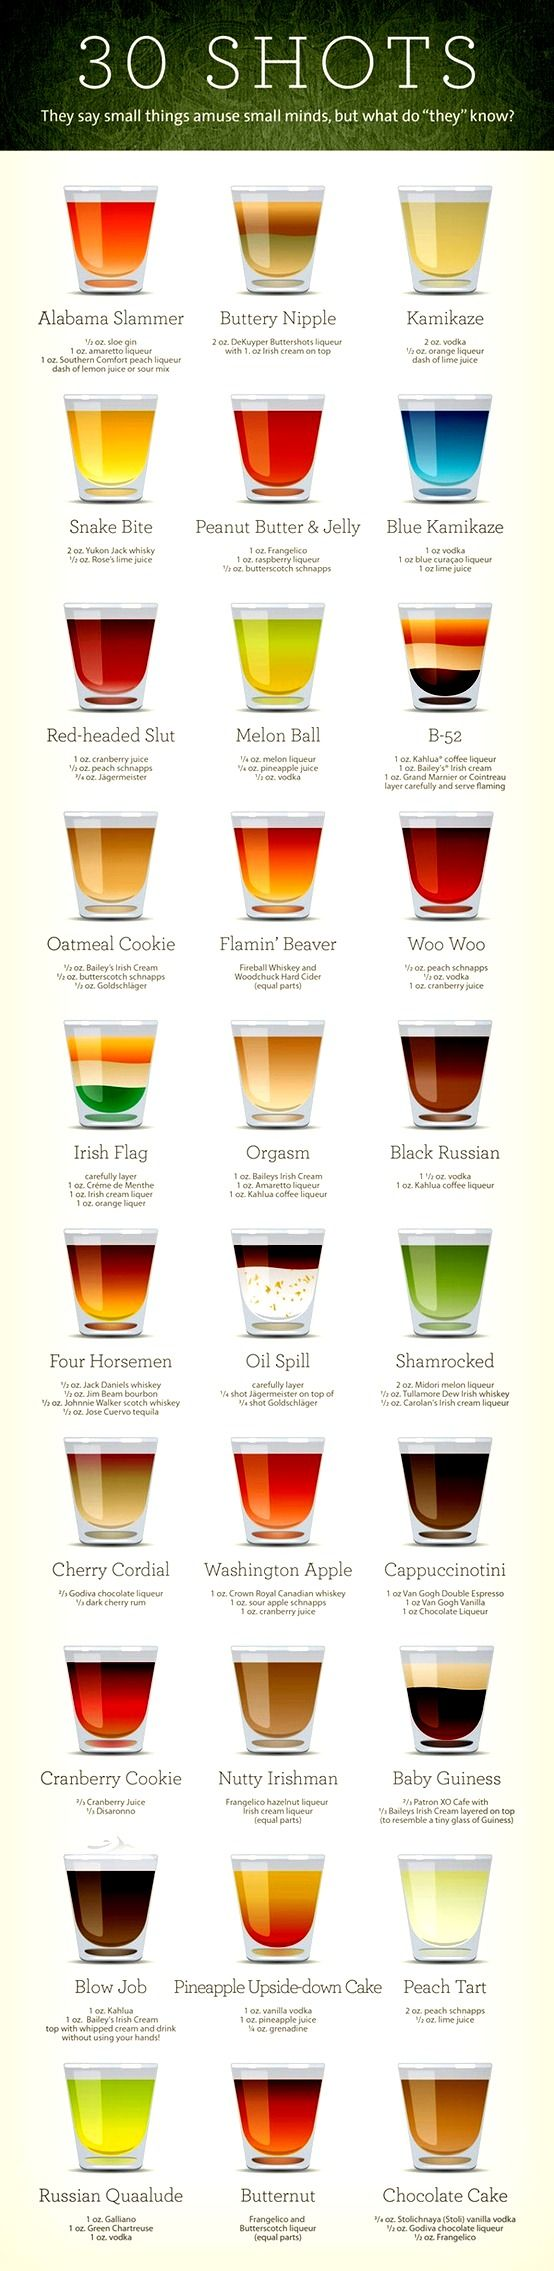 30 Shots Recipes. YUMMY